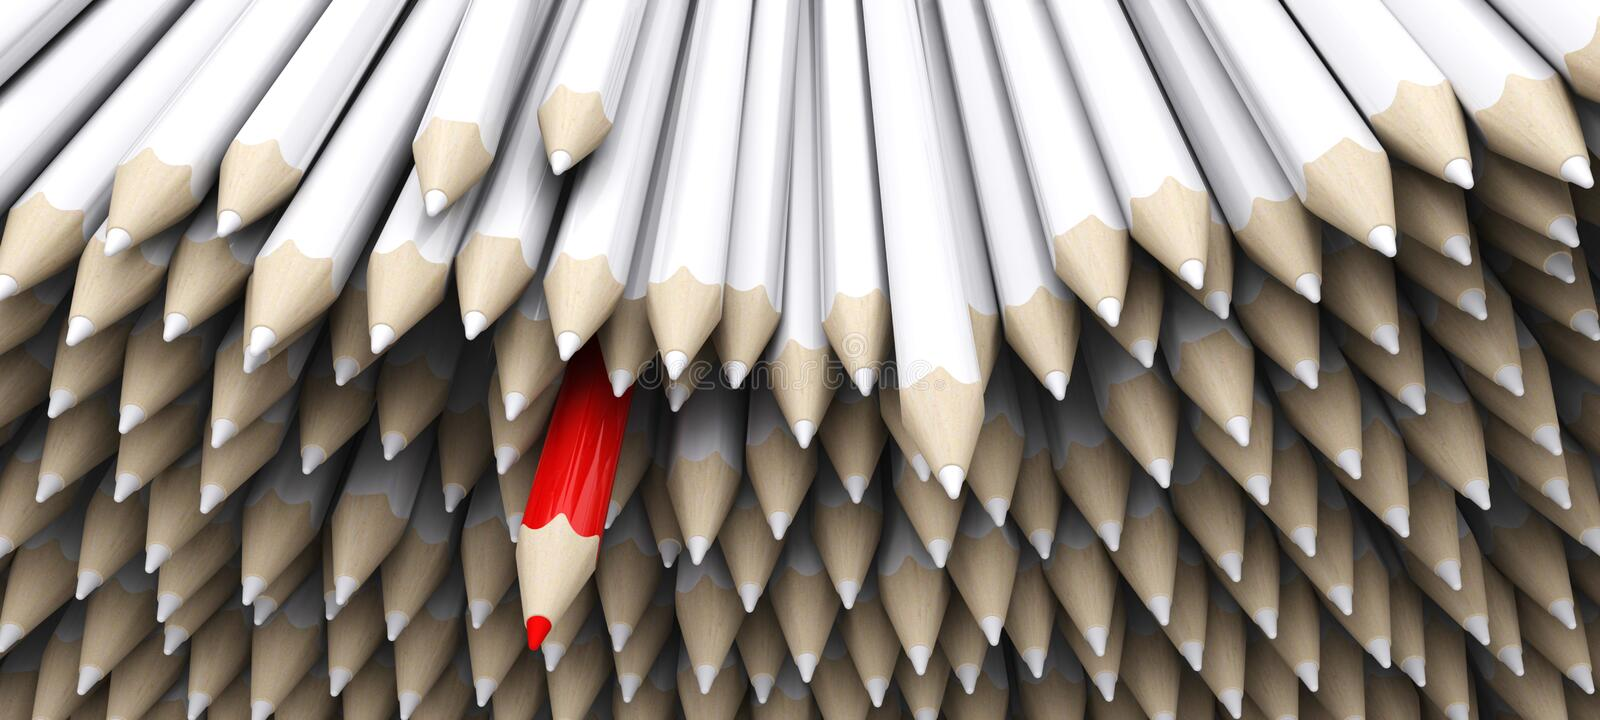 White pencil crayons with stand out red pencil royalty free illustration